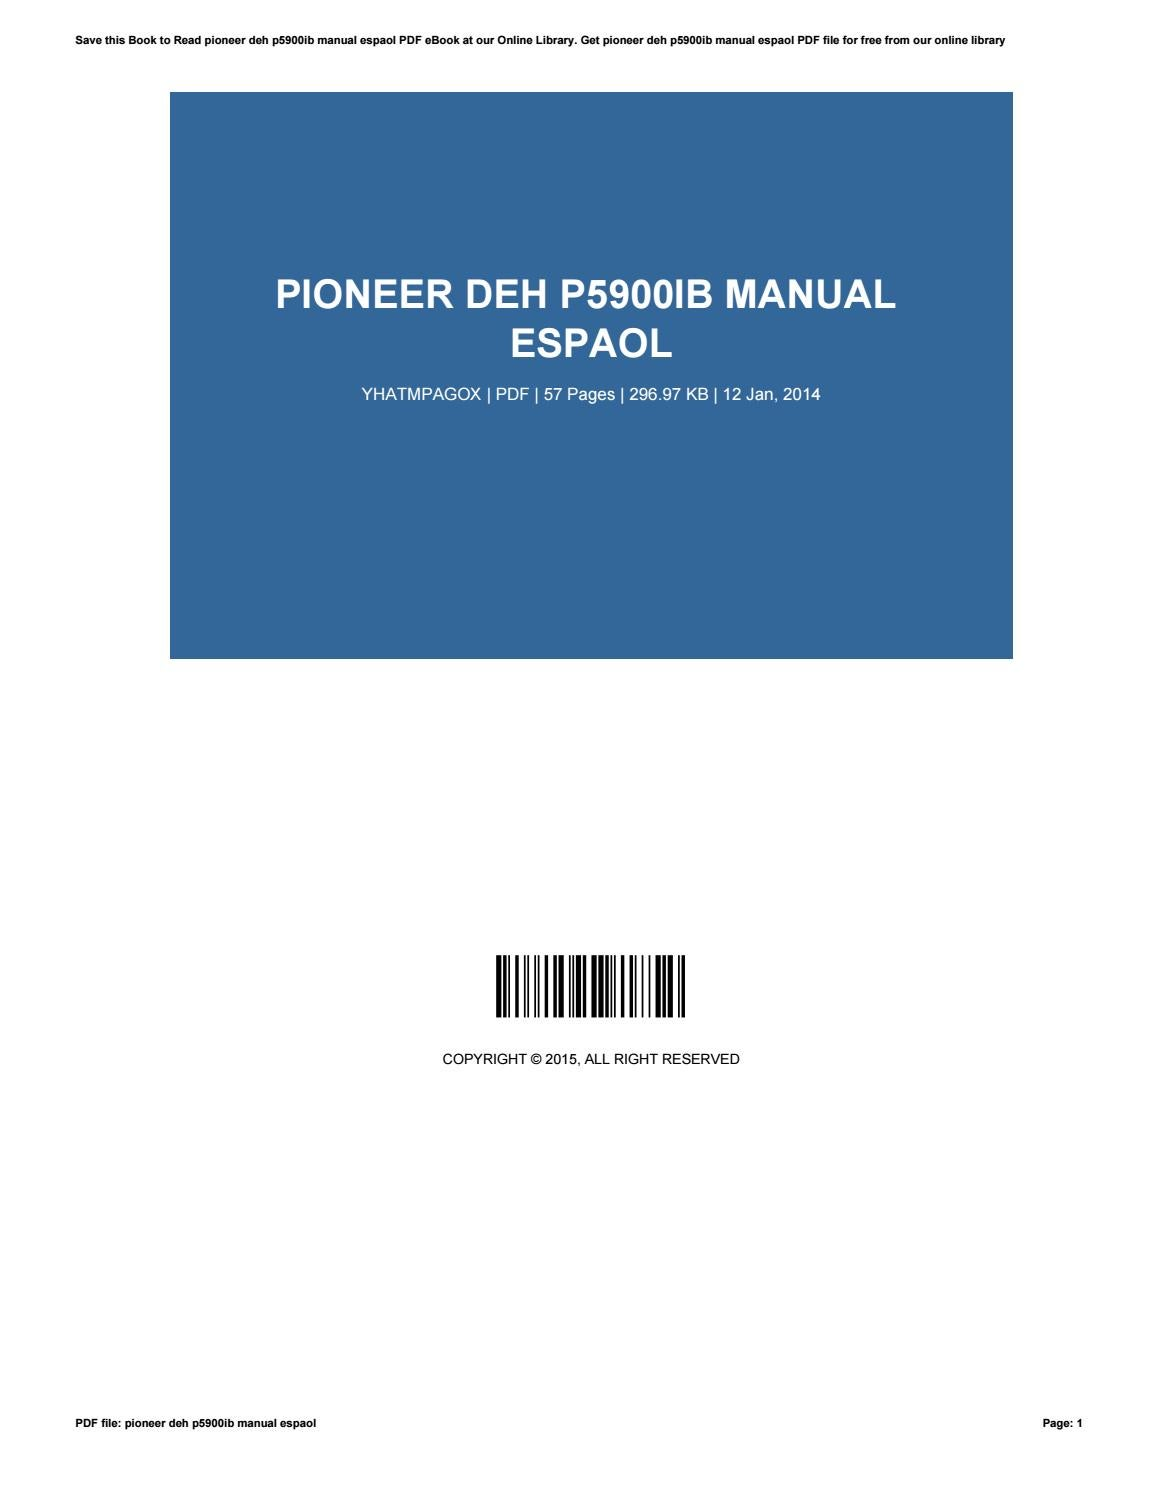 Pioneer Deh P59001b Manual 1100mp Wiring Diagram P5900ib Espaol By Jeremybogdan2309 Issuu Rh Com Installation